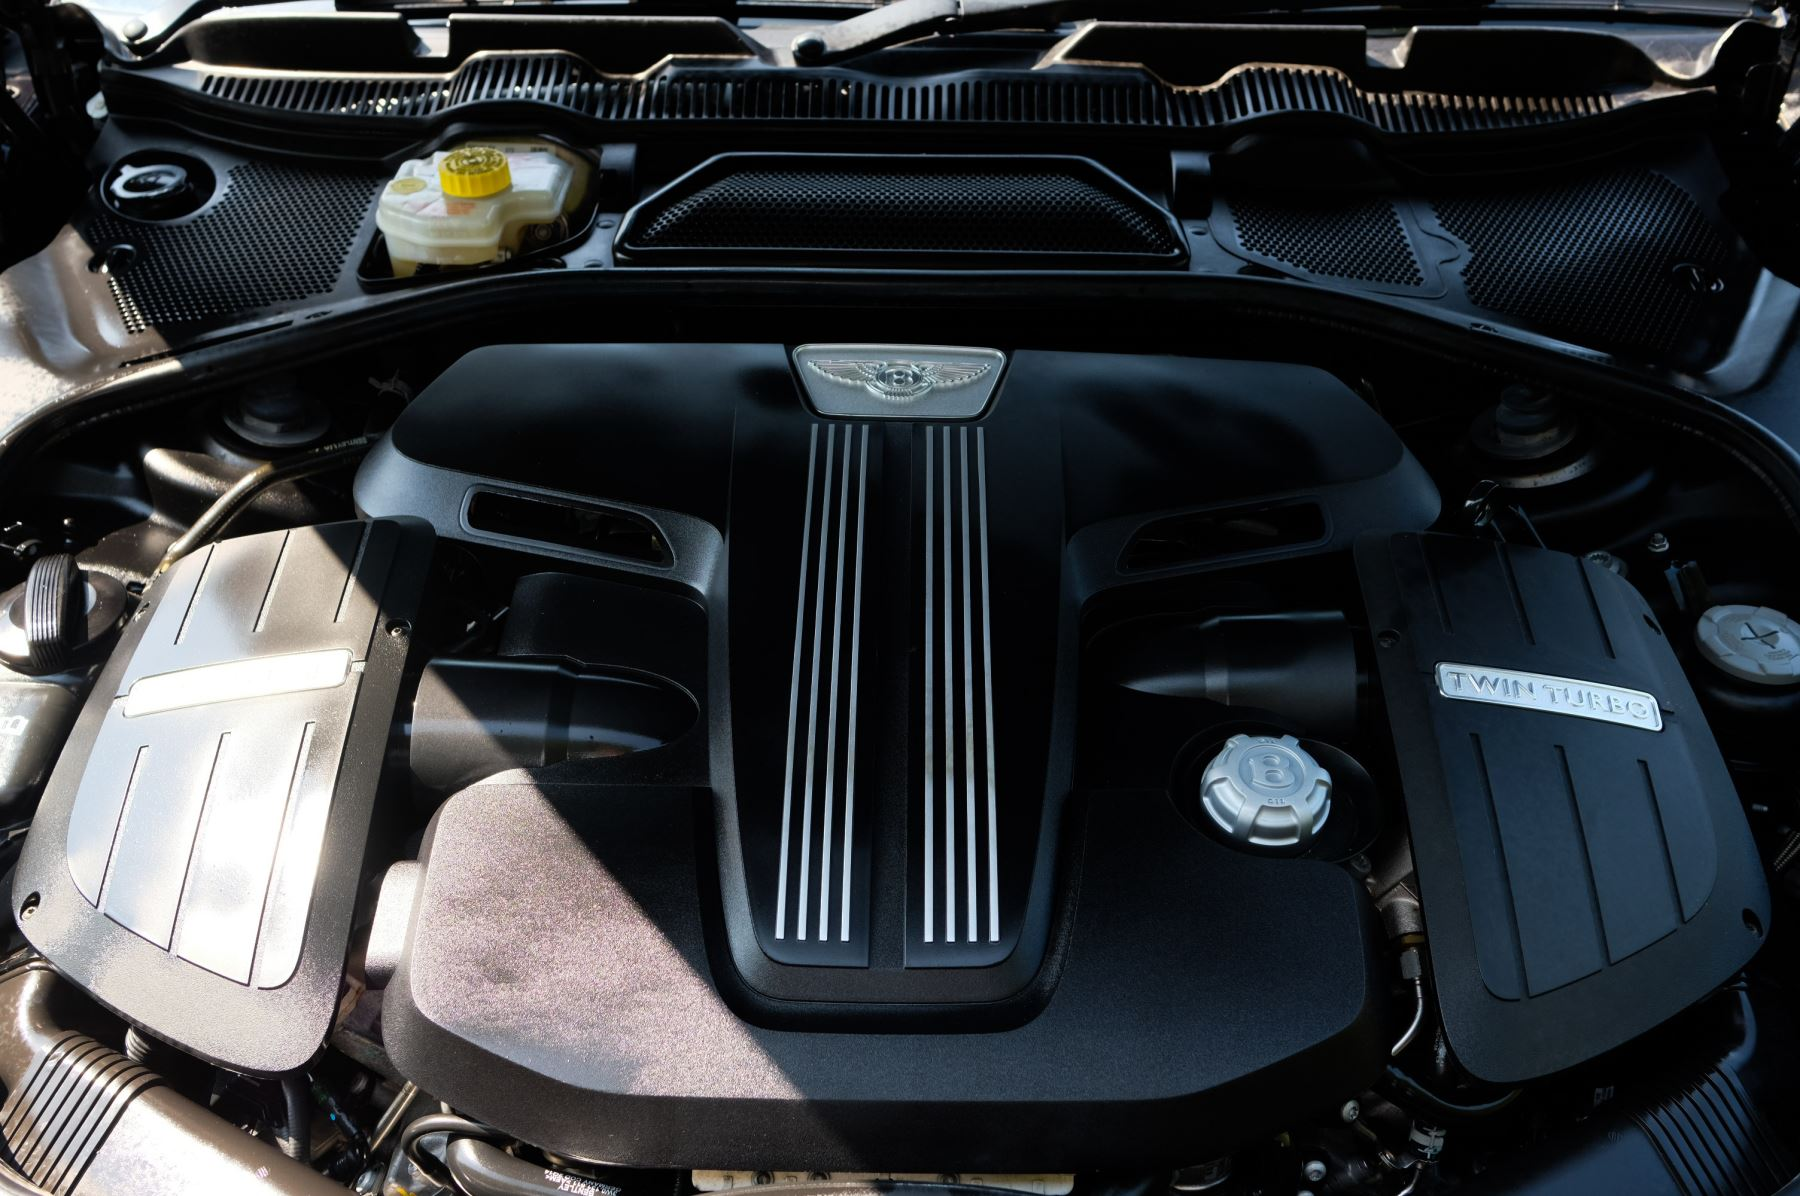 Bentley Continental GTC 4.0 V8 S - Mulliner Driving Specification image 9